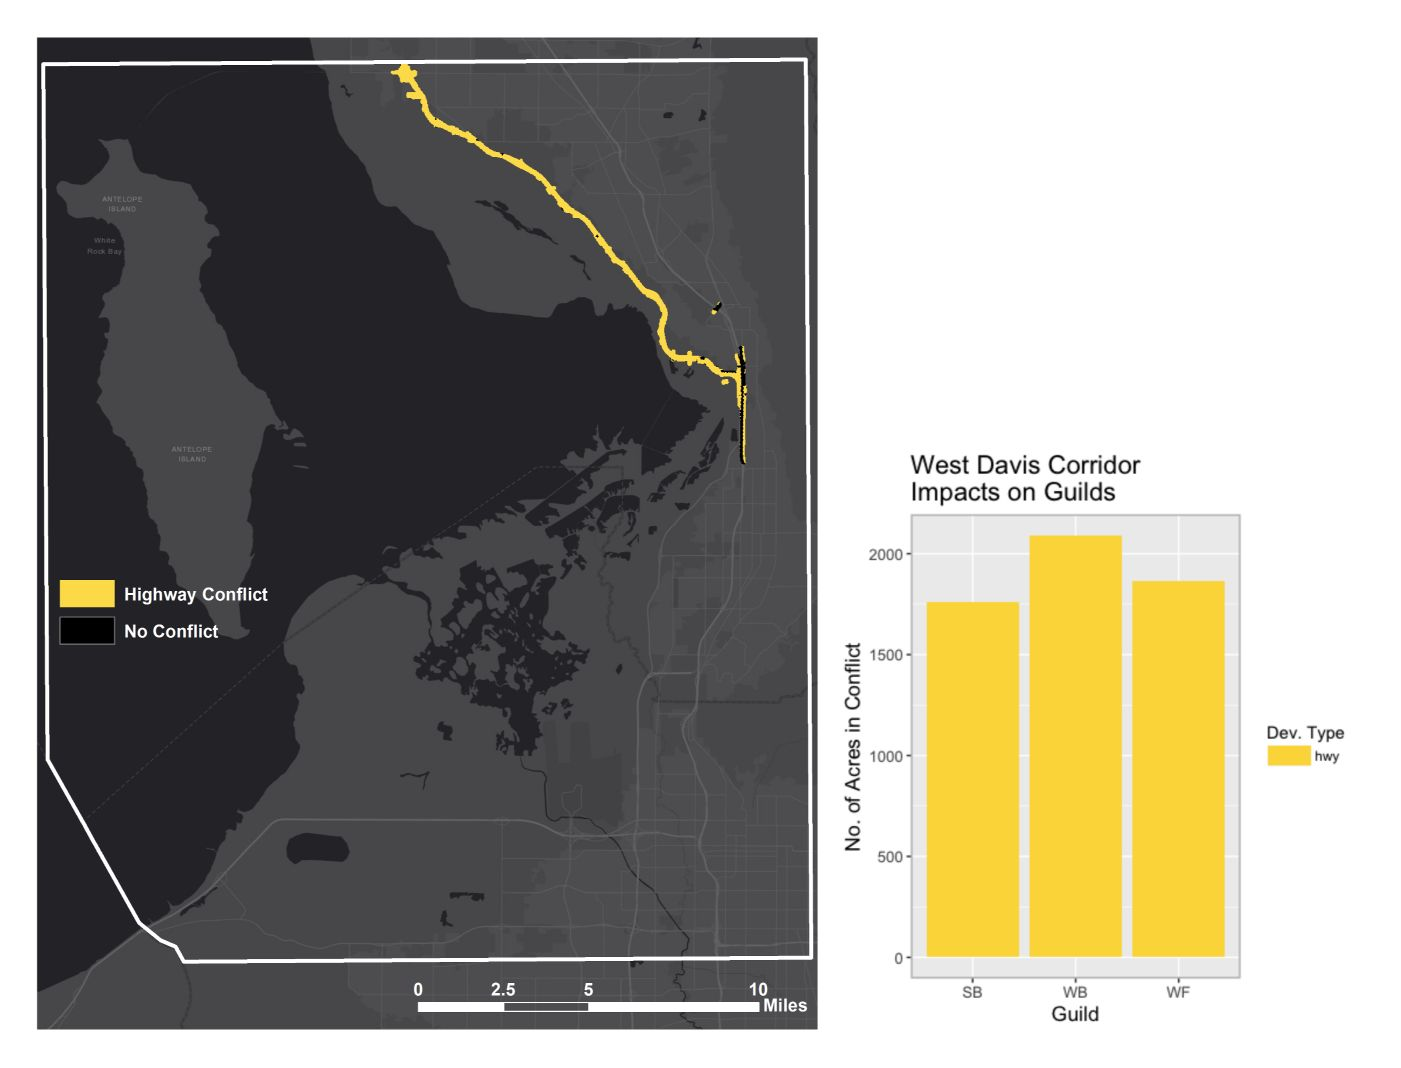 Figure 5: The yellow area on the map indicates areas of conflict with bird habitat – 88% of this project's footprint is in conflict. This entire project is the 'highway' development type. The graph depicts the number of acres of conflict with each bird guild that is associated with this project. Waterbirds are the most impacted, followed by waterfowl and then shorebirds. Map and graph created by Aubin Douglas using data from the Utah Department of Transportation and USGS GAP data.